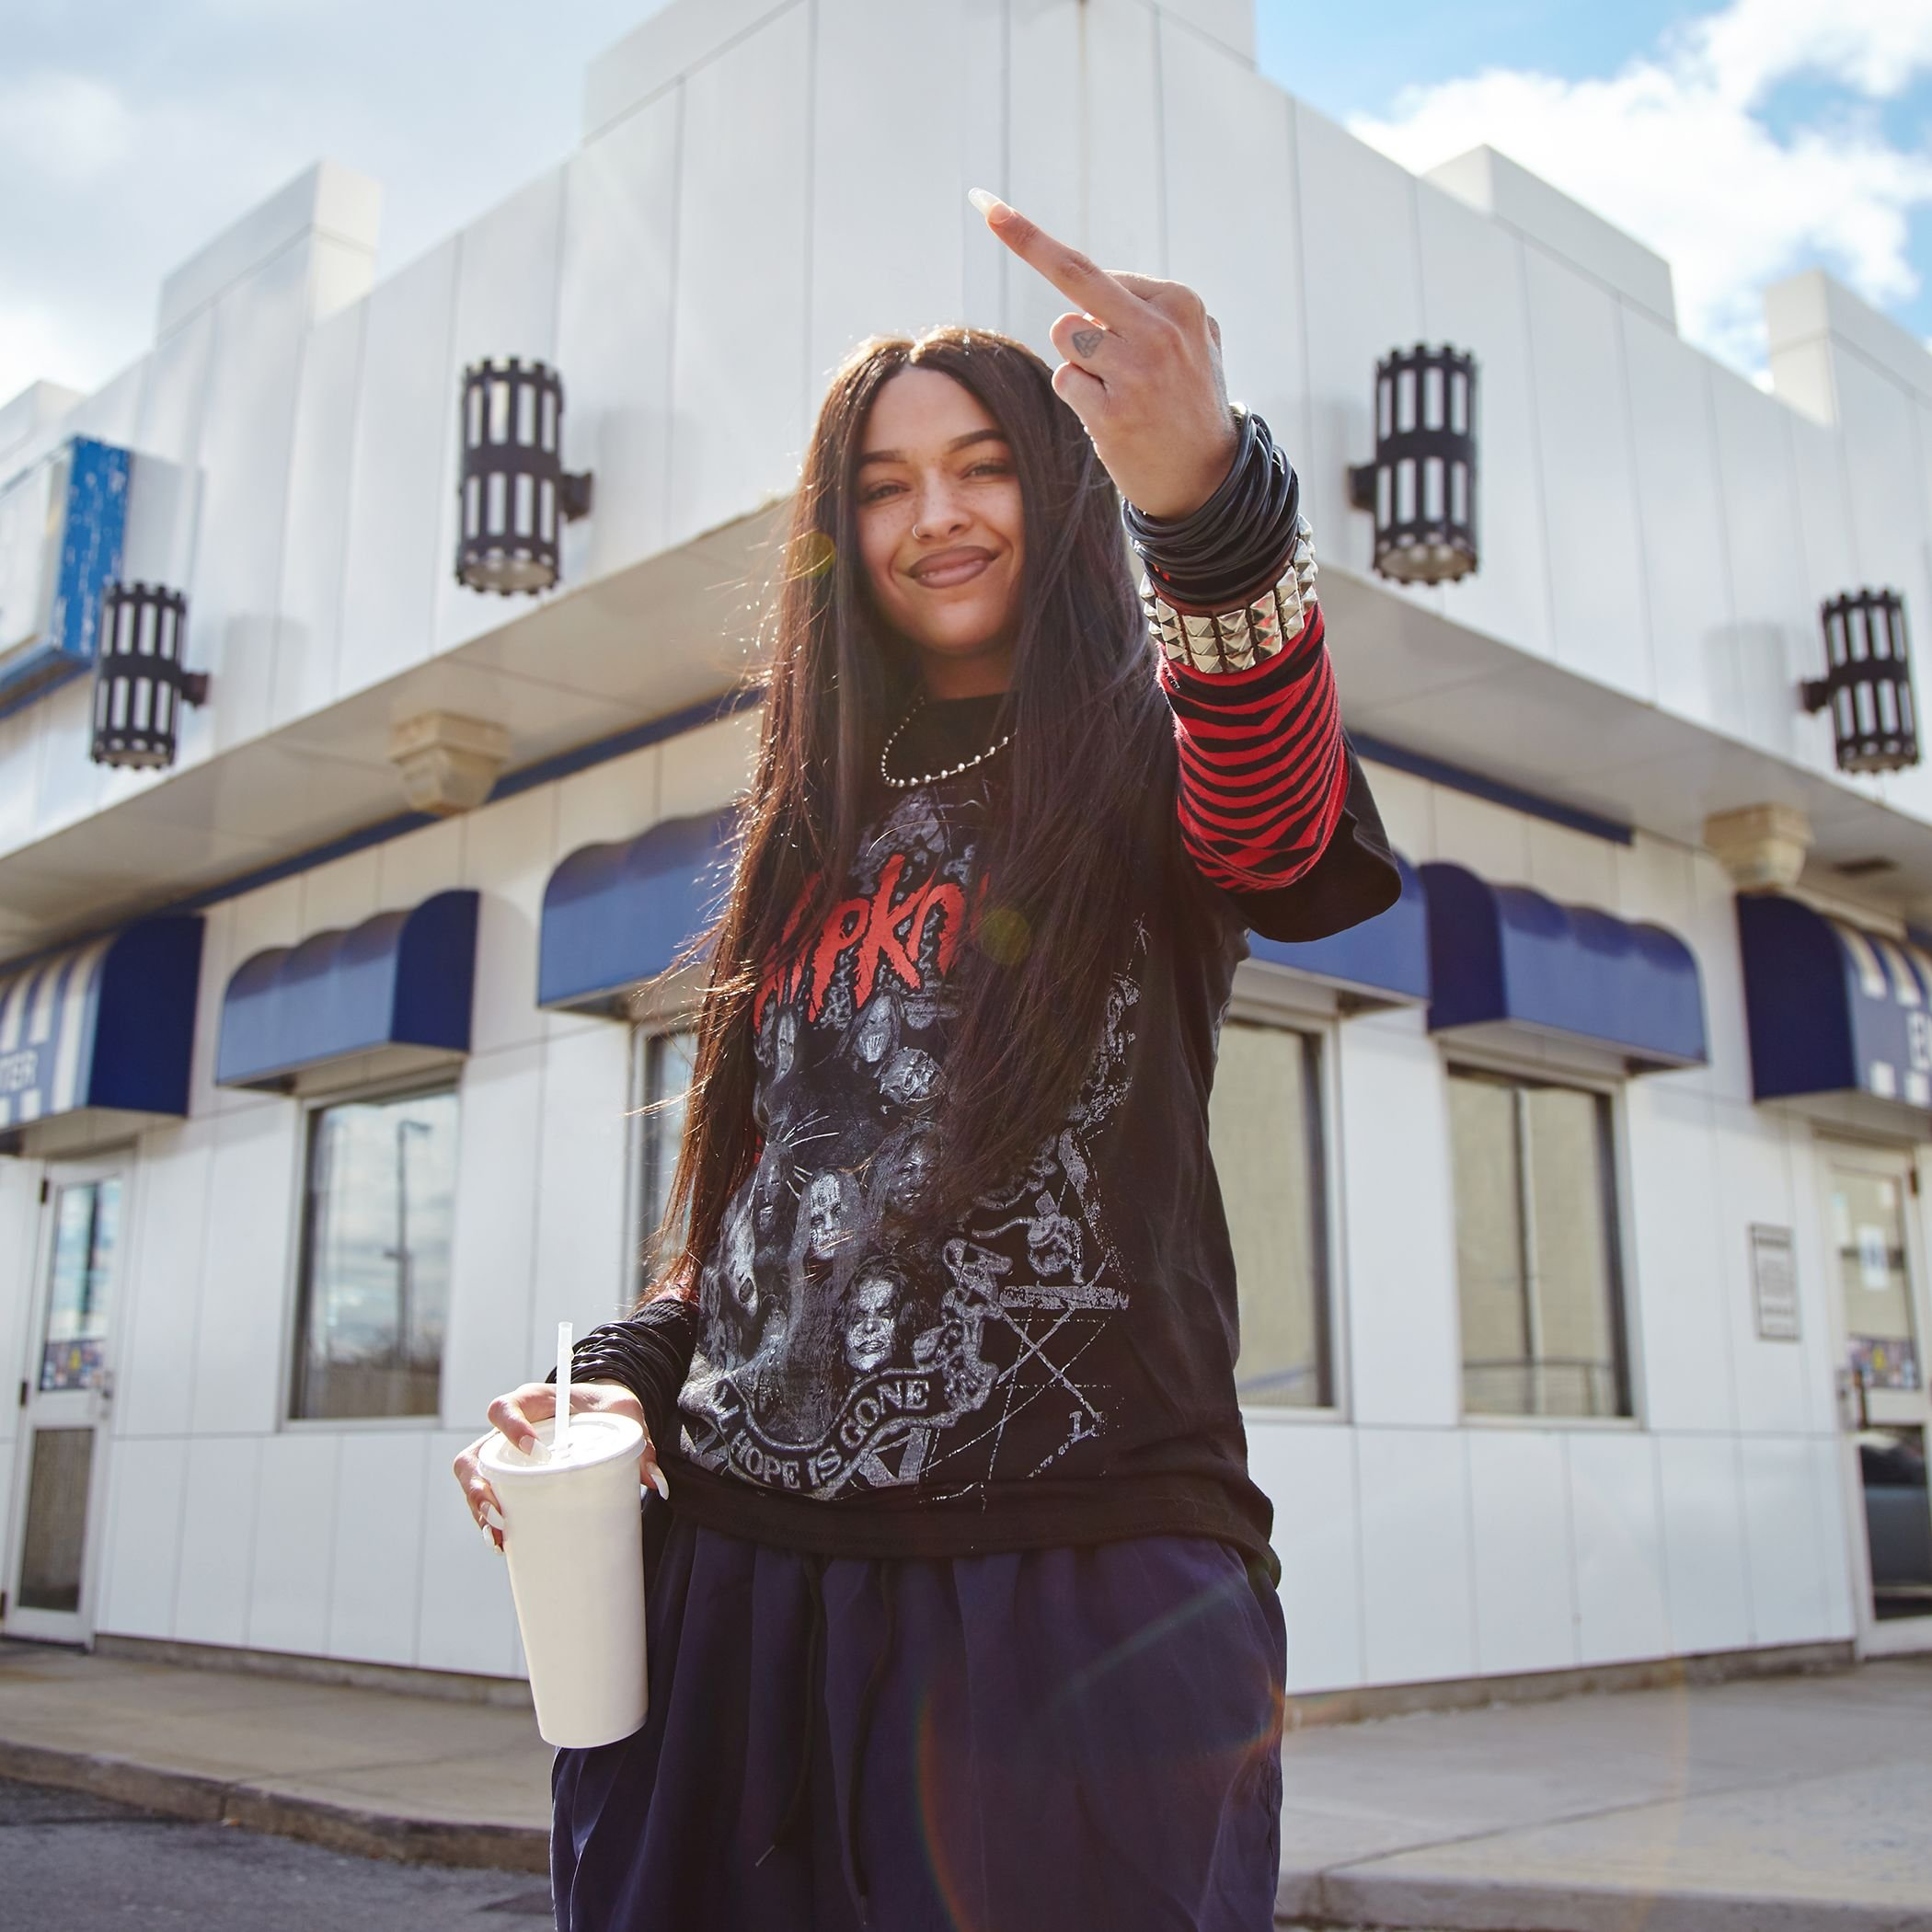 Cassette : Princess Nokia - Girl Cried Red (Cassette)